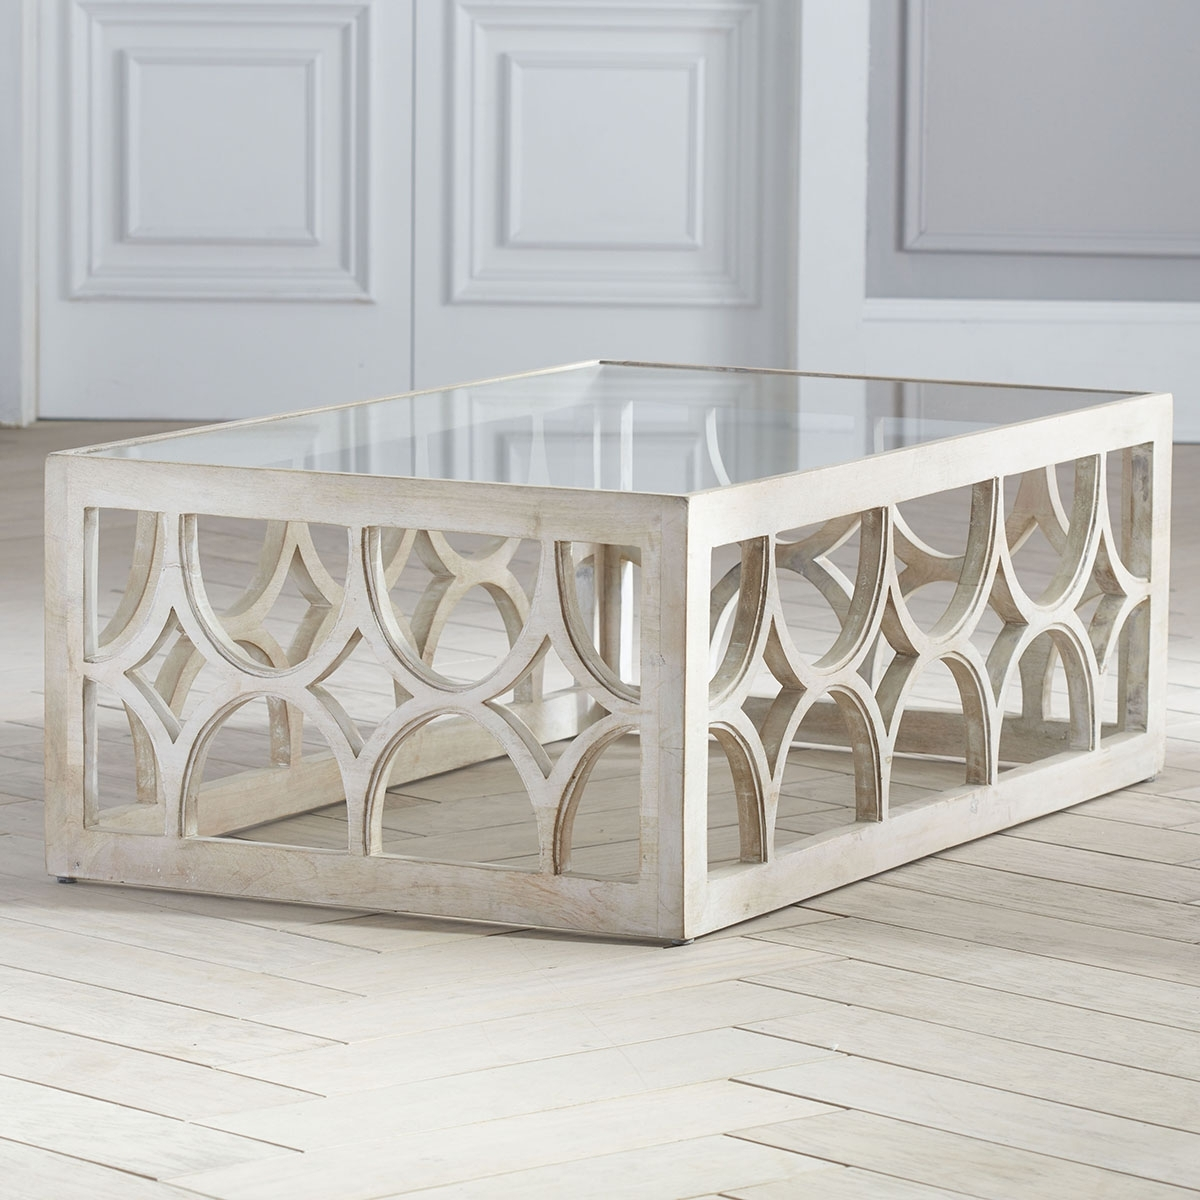 Limewash Coffee Table | Wisteria pertaining to Expressionist Coffee Tables (Image 19 of 30)